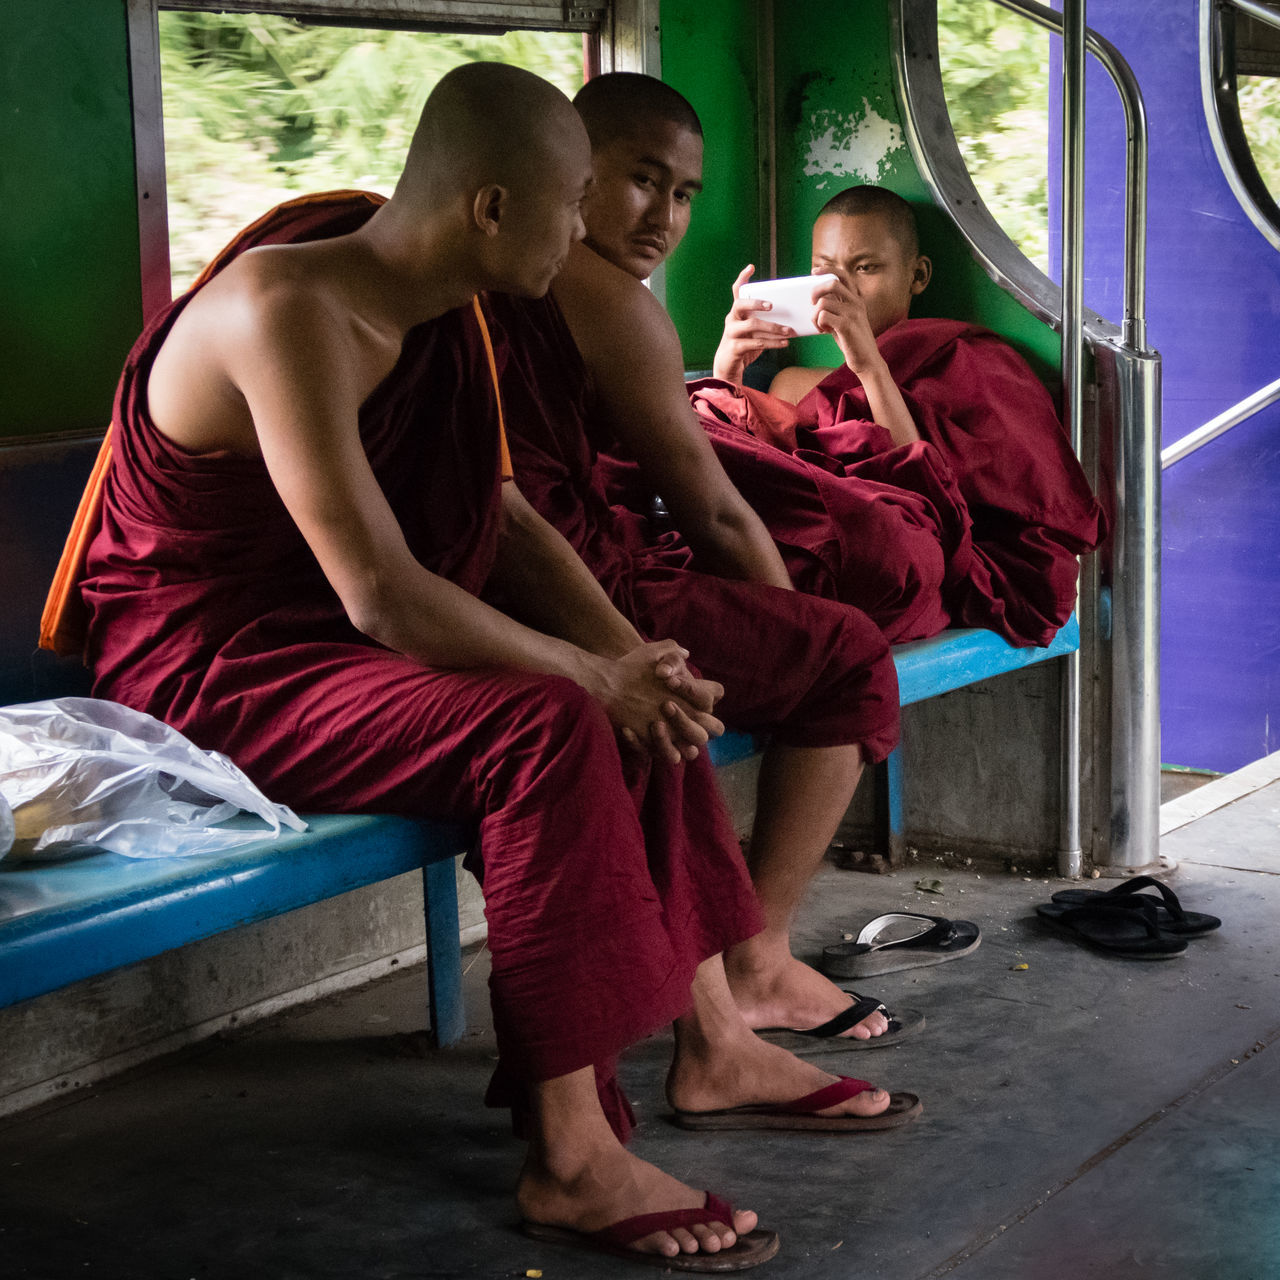 Buddhism Burma Circle Line Commuters Commuting Cultures Day Monks Myanmar Novice Monk Novices On The Train Real People Religion Religion And Beliefs Street Photography Togetherness Yangon Young Adult Young Adults Miles Away Mobile Conversations